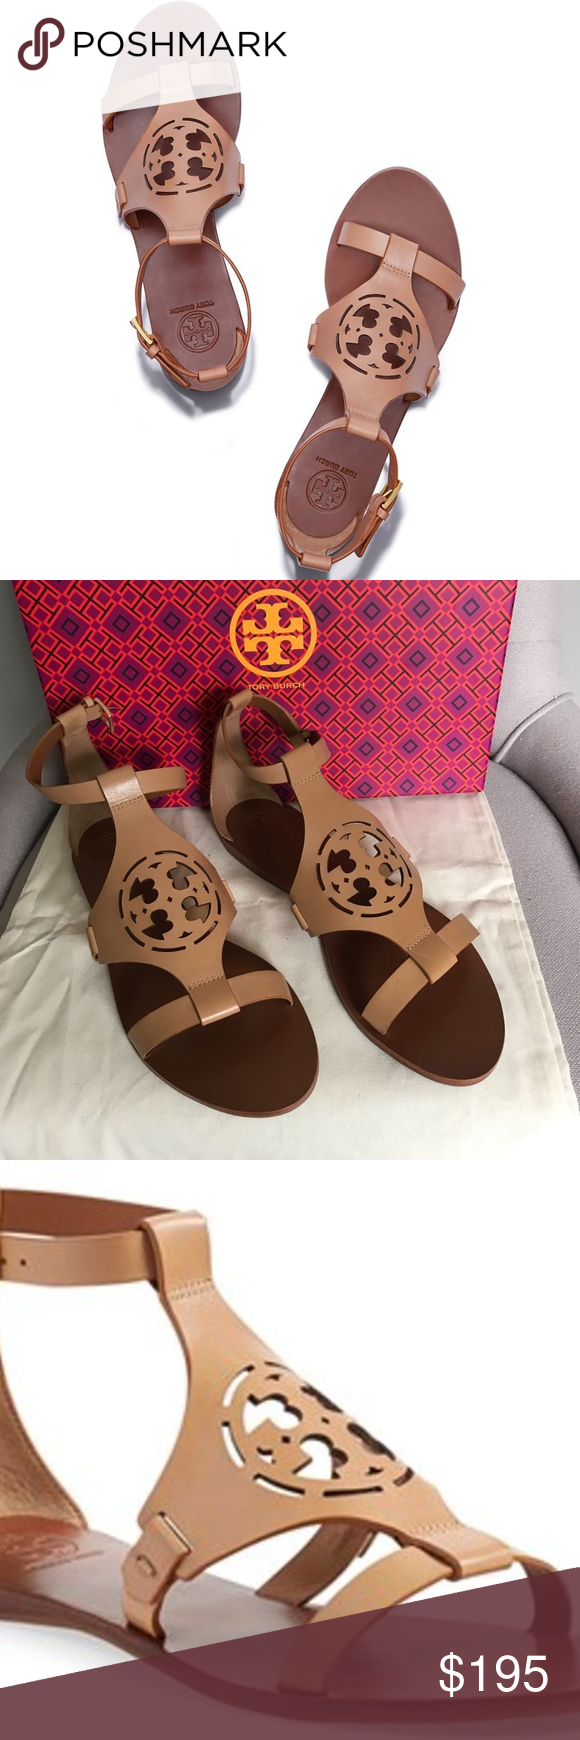 ab6b0135f7383 Tory Burch - Zoey Leather Logo flat sandals Tory Burch Zoey Leather Logo  Flat